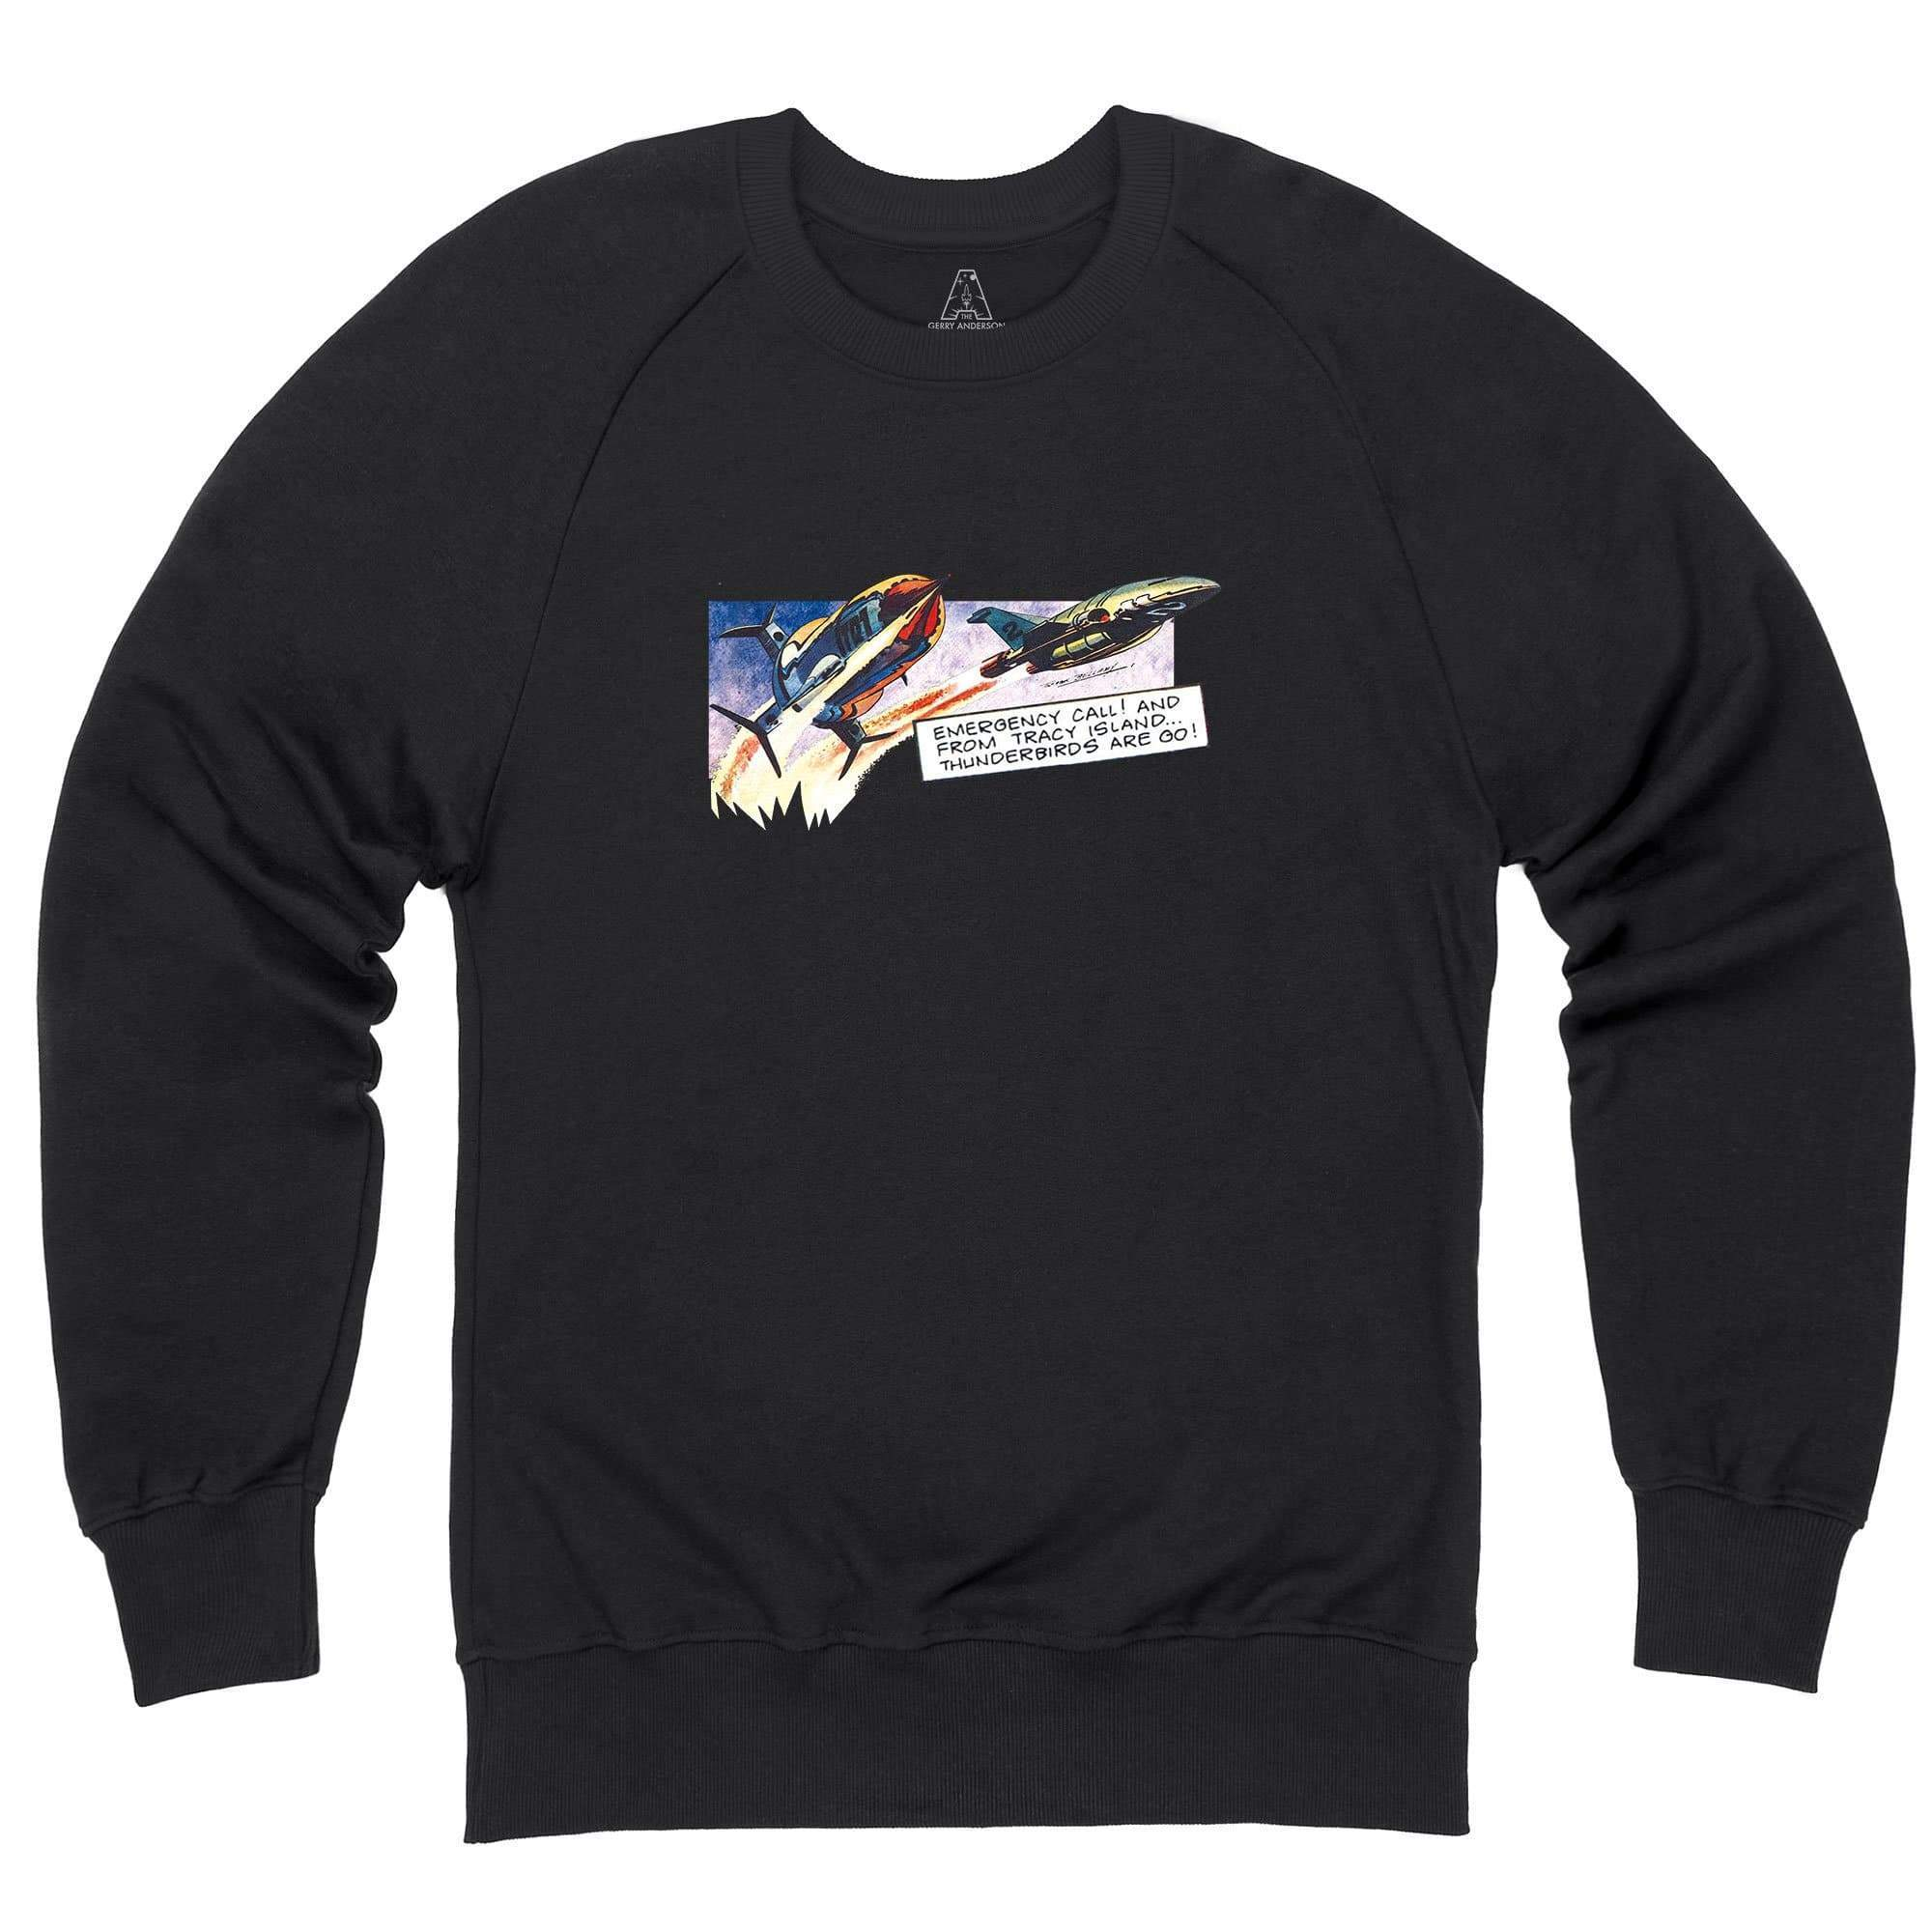 Frank Bellamy Thunderbirds Comic Strip Sweatshirt [Official & Exclusive] - The Gerry Anderson Store